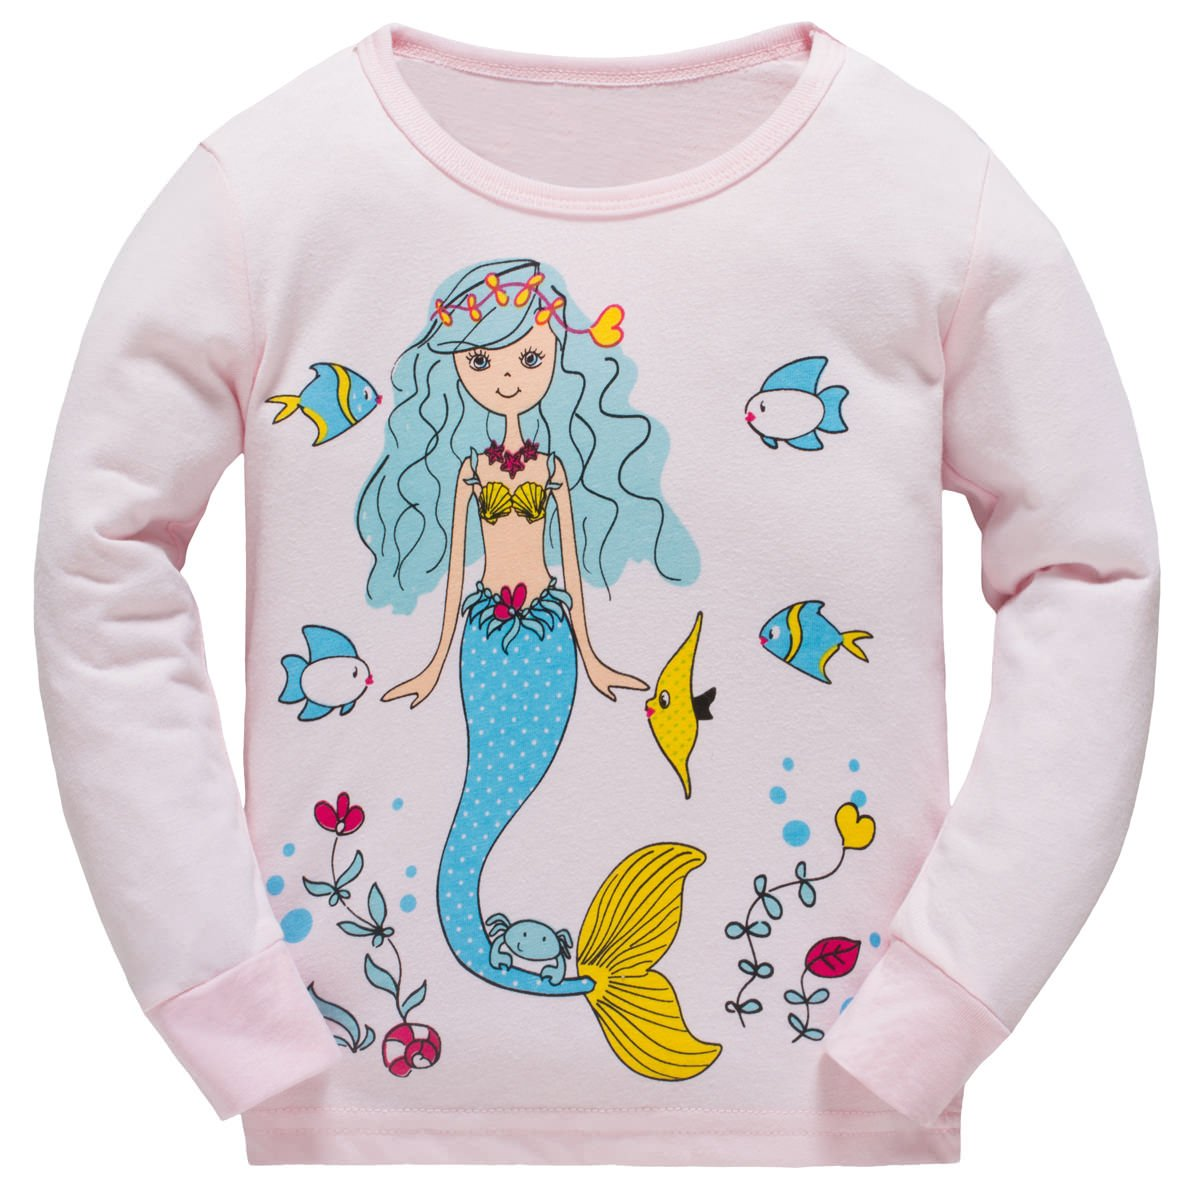 Schmoopy Girls Pajamas Set with Mermaid for Kids and Toddler Girls 3T